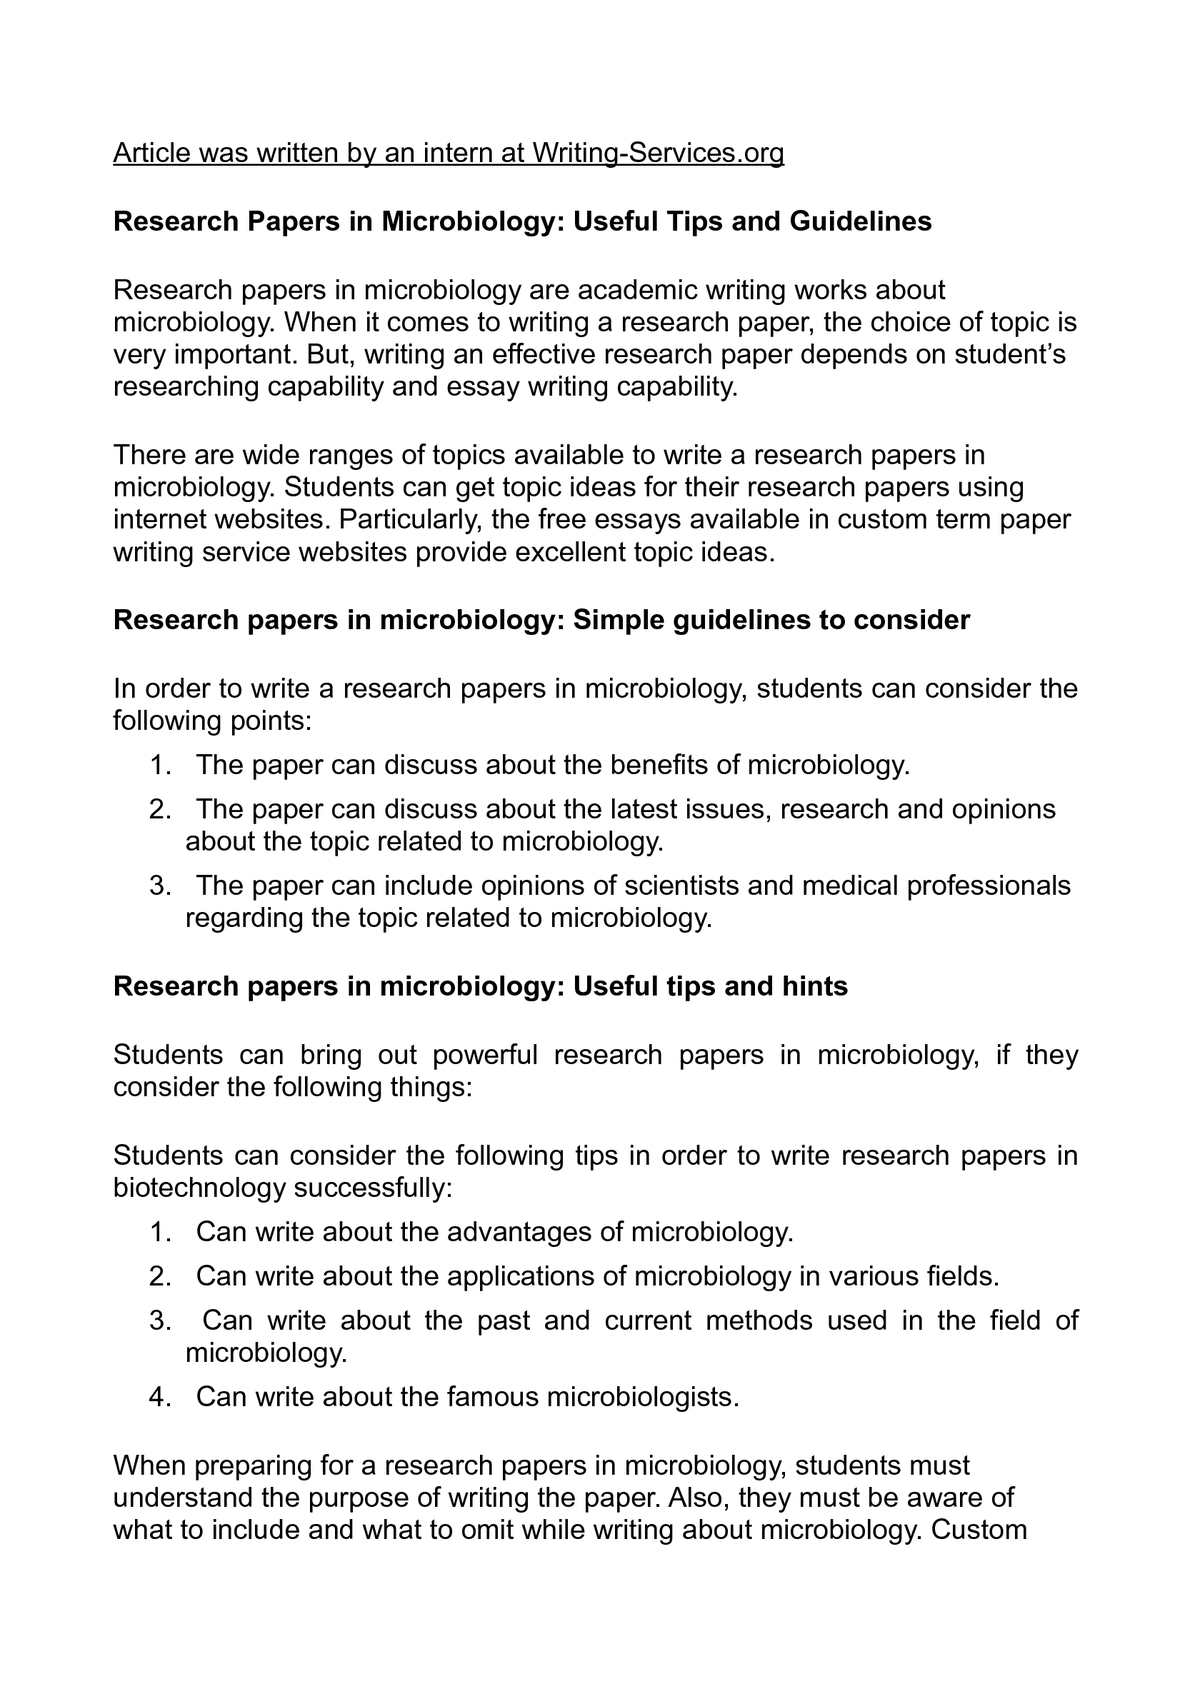 007 Research Paper Tips For Papers Wondrous Good Effective Writing Full